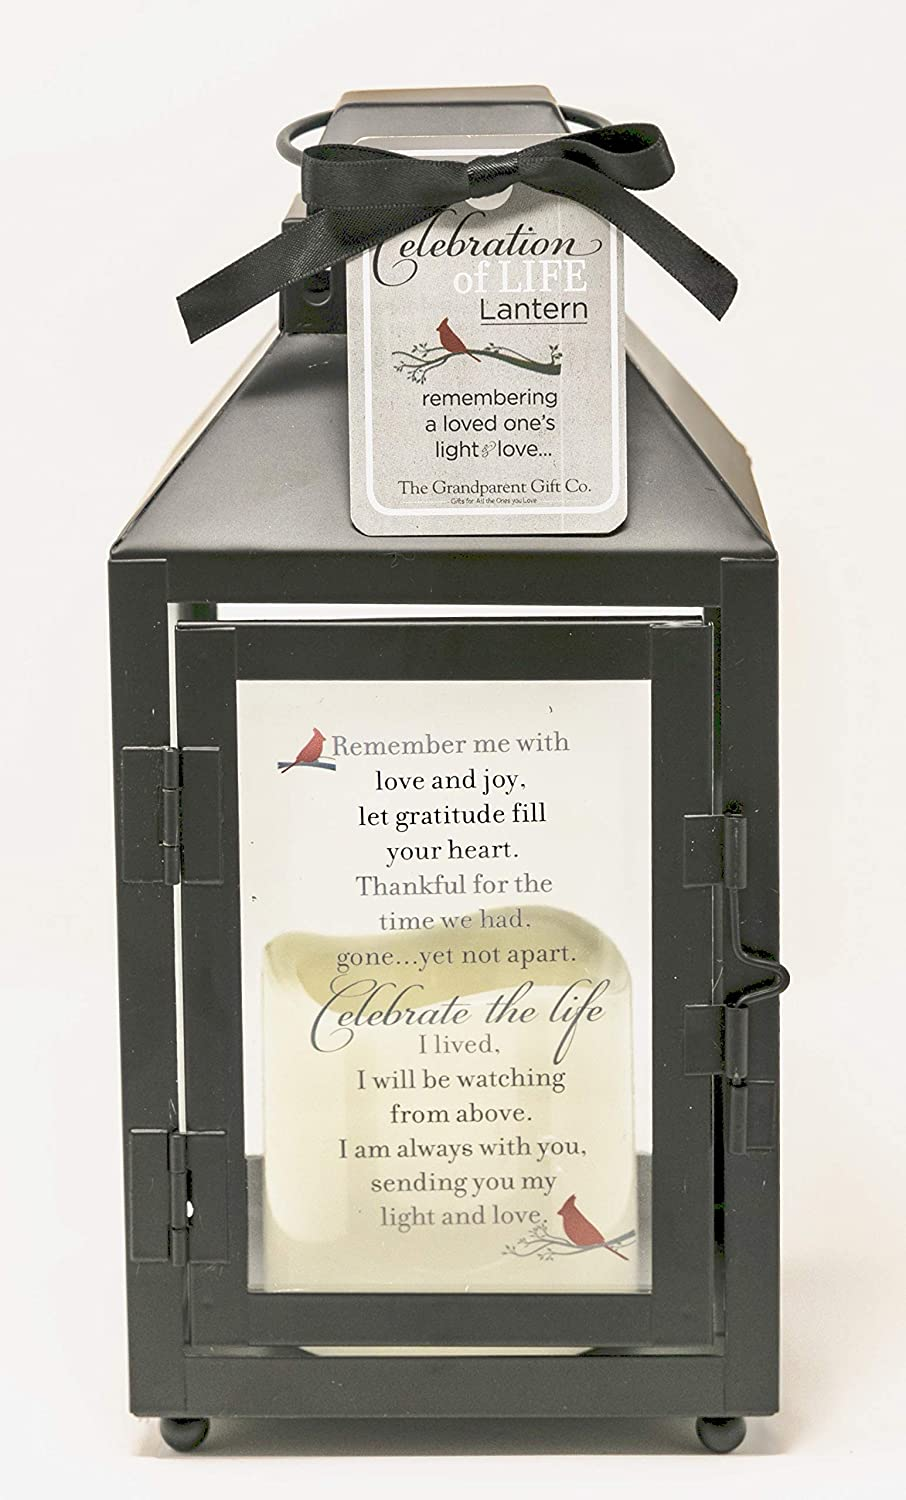 Celebration of Life Memorial Lantern with Flickering LED Candle-Thoughtful Bereavement/Sympathy Gift for Loss of Loved One (Black)